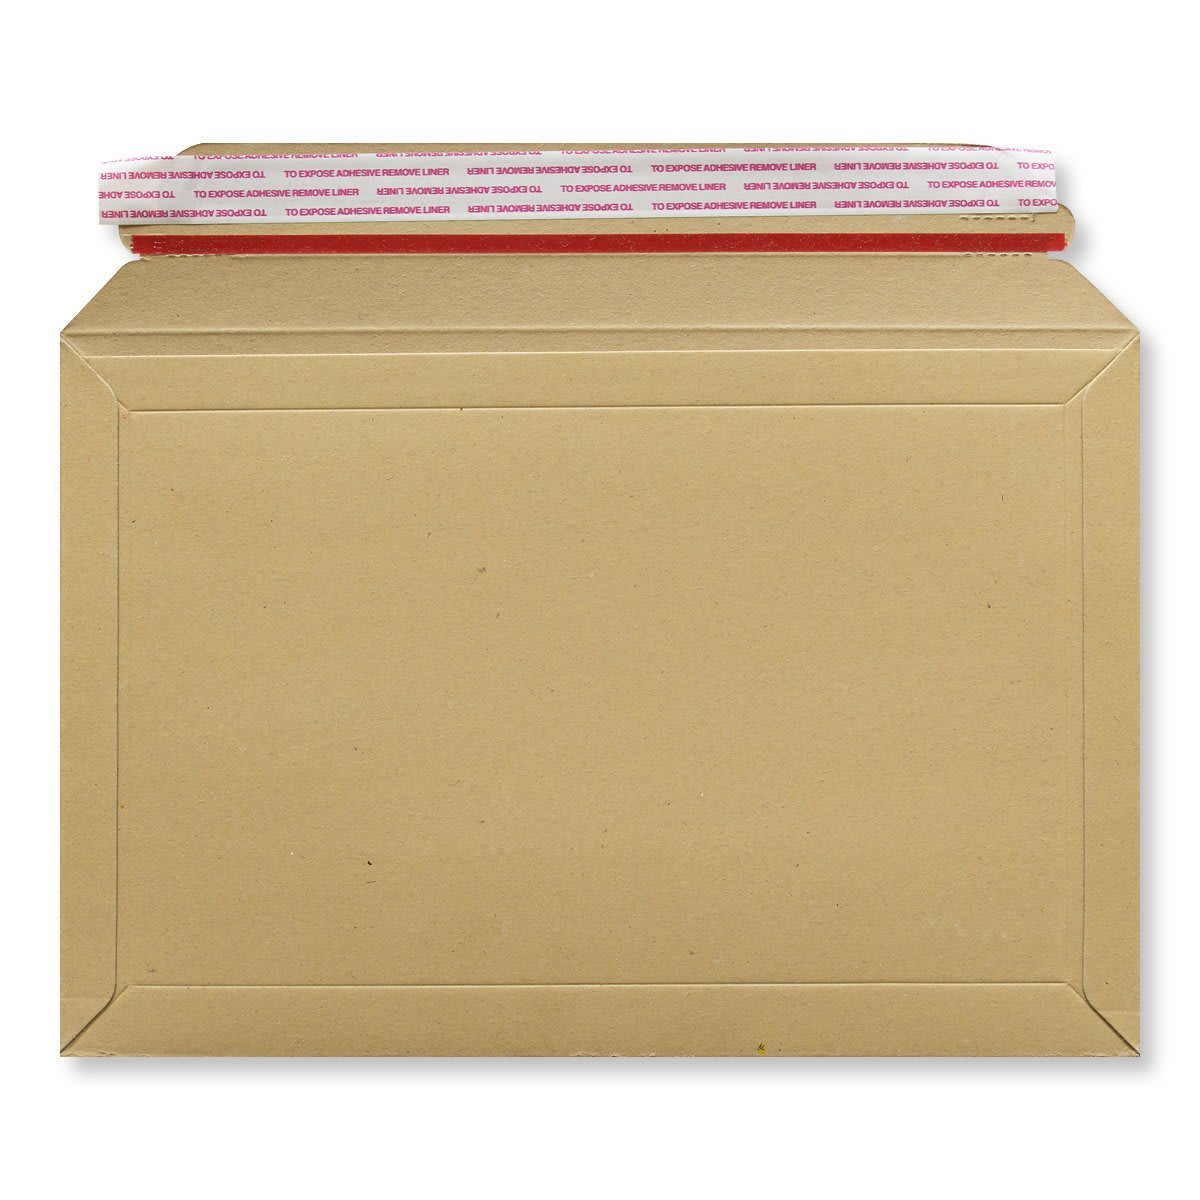 194 x 292mm CAPACITY BOOK MAILERS 300GSM